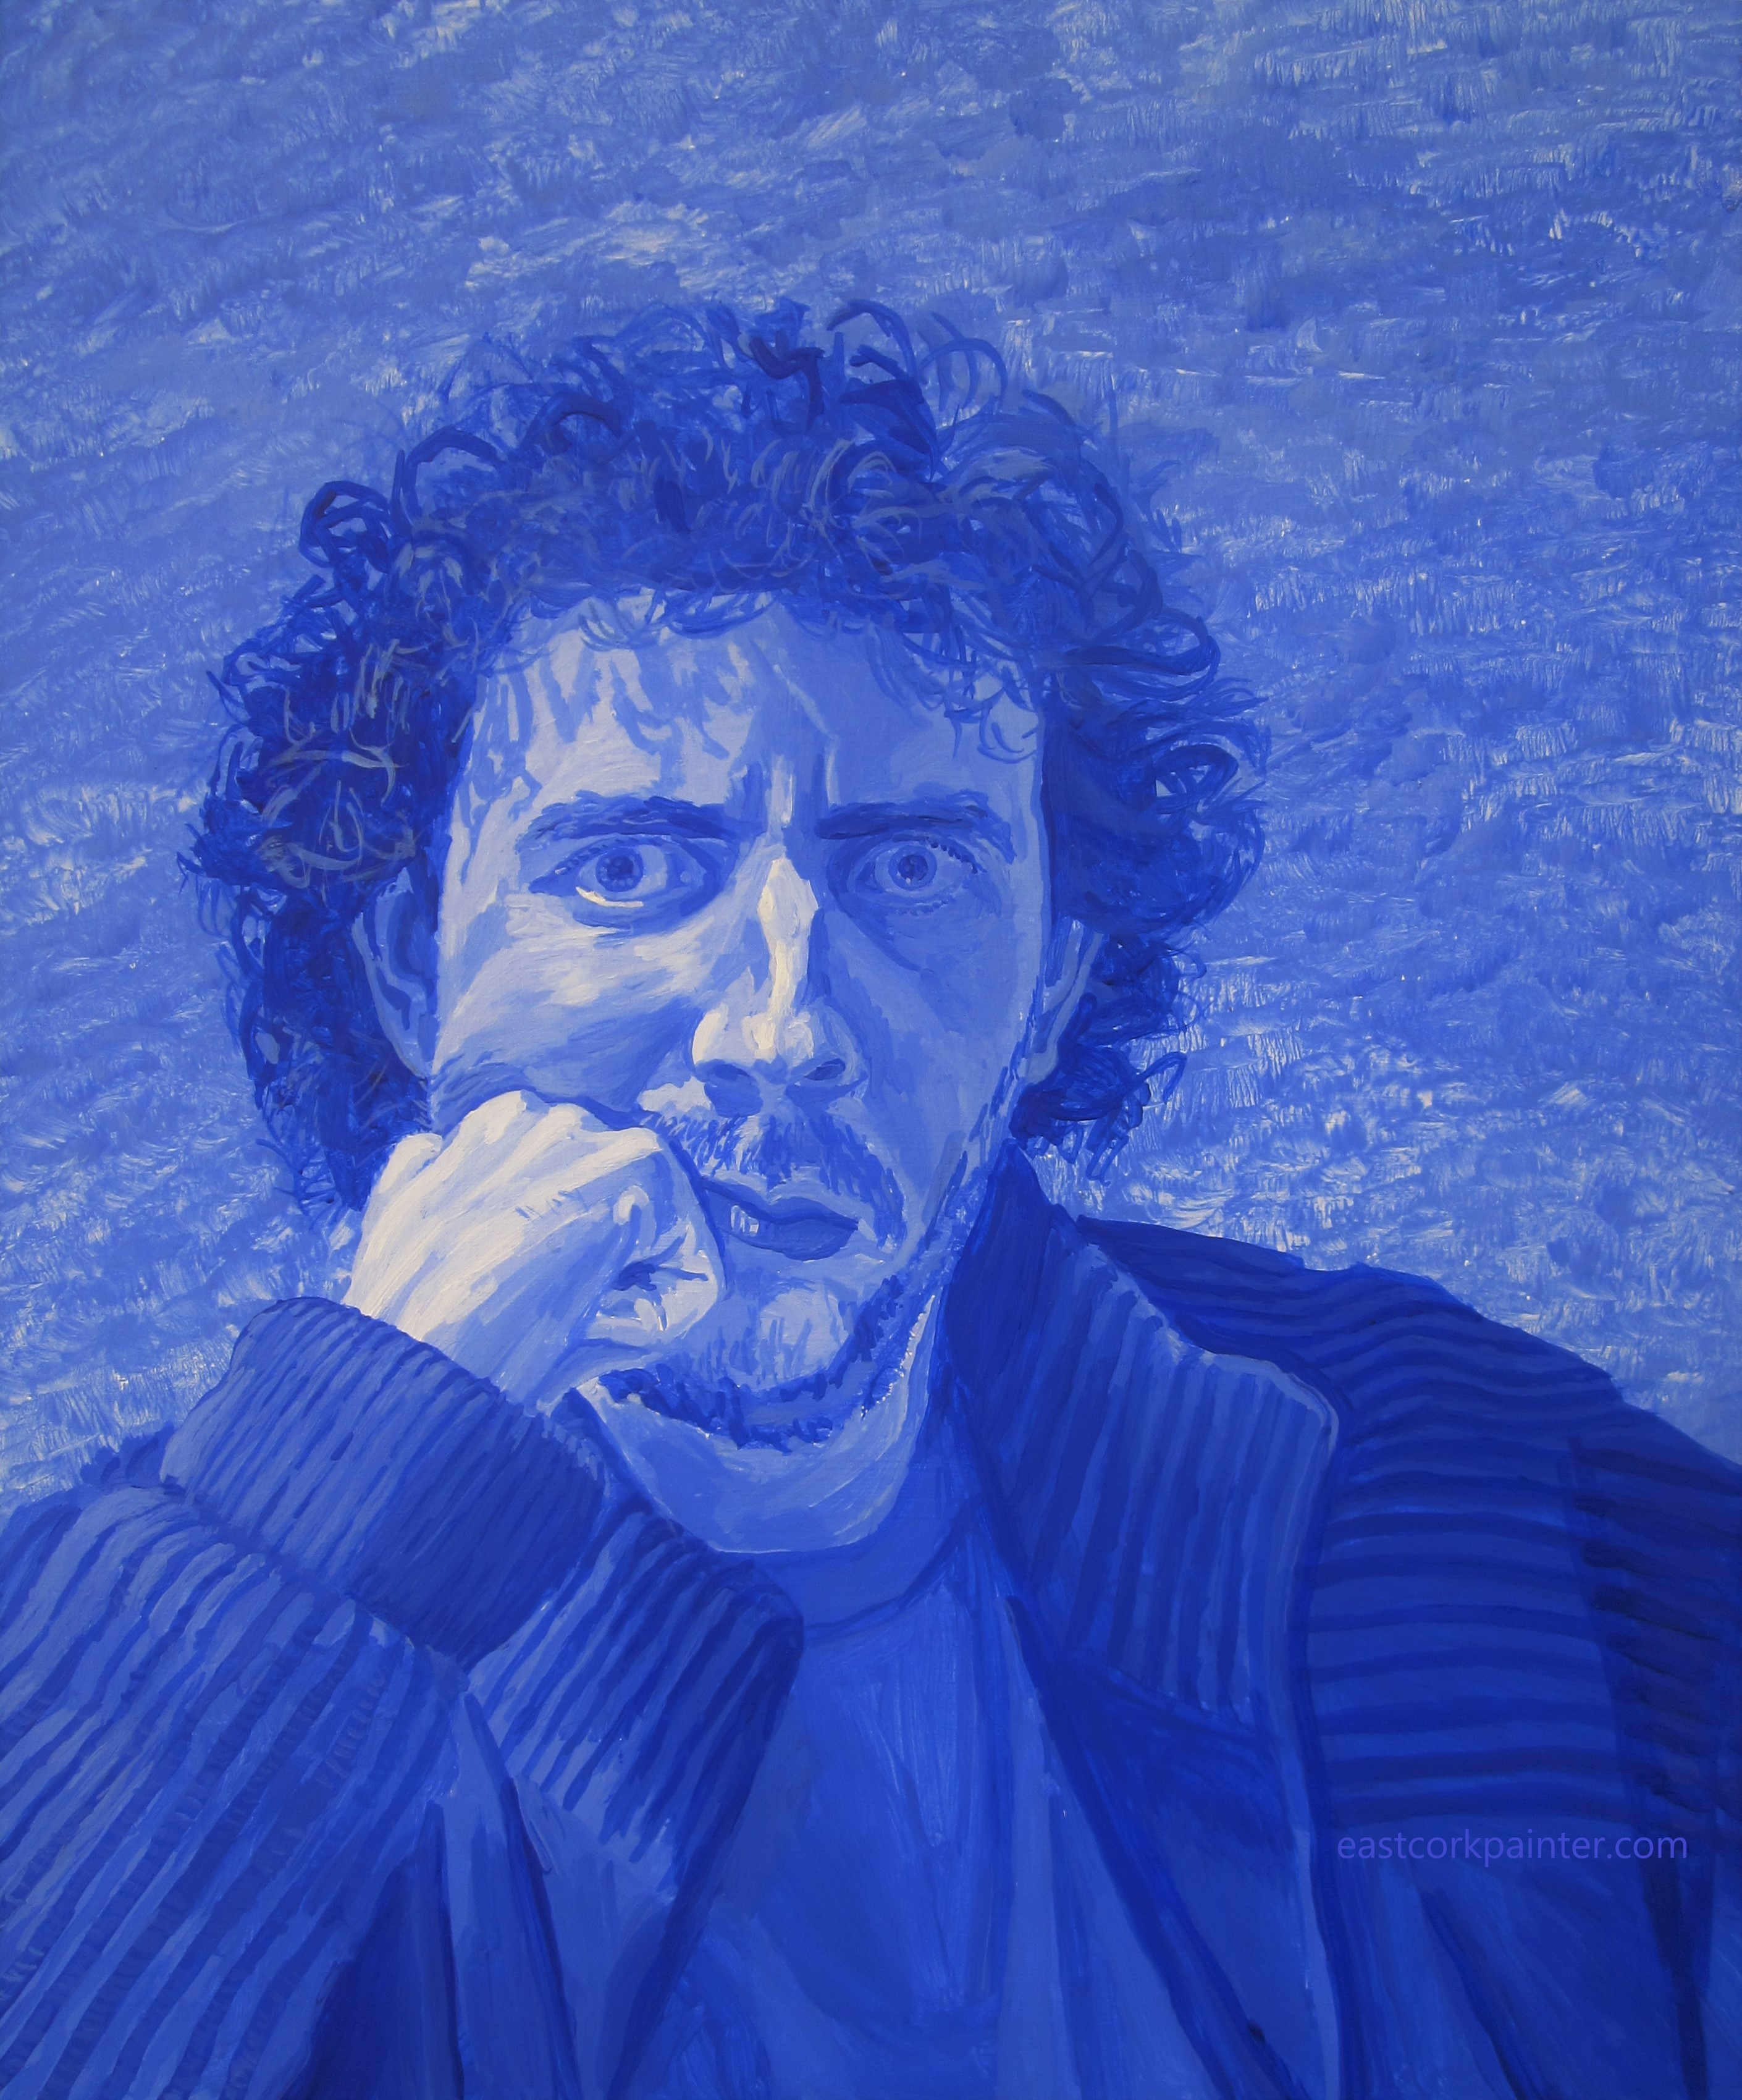 Self-Portrait In Blue, March 2016 watermark